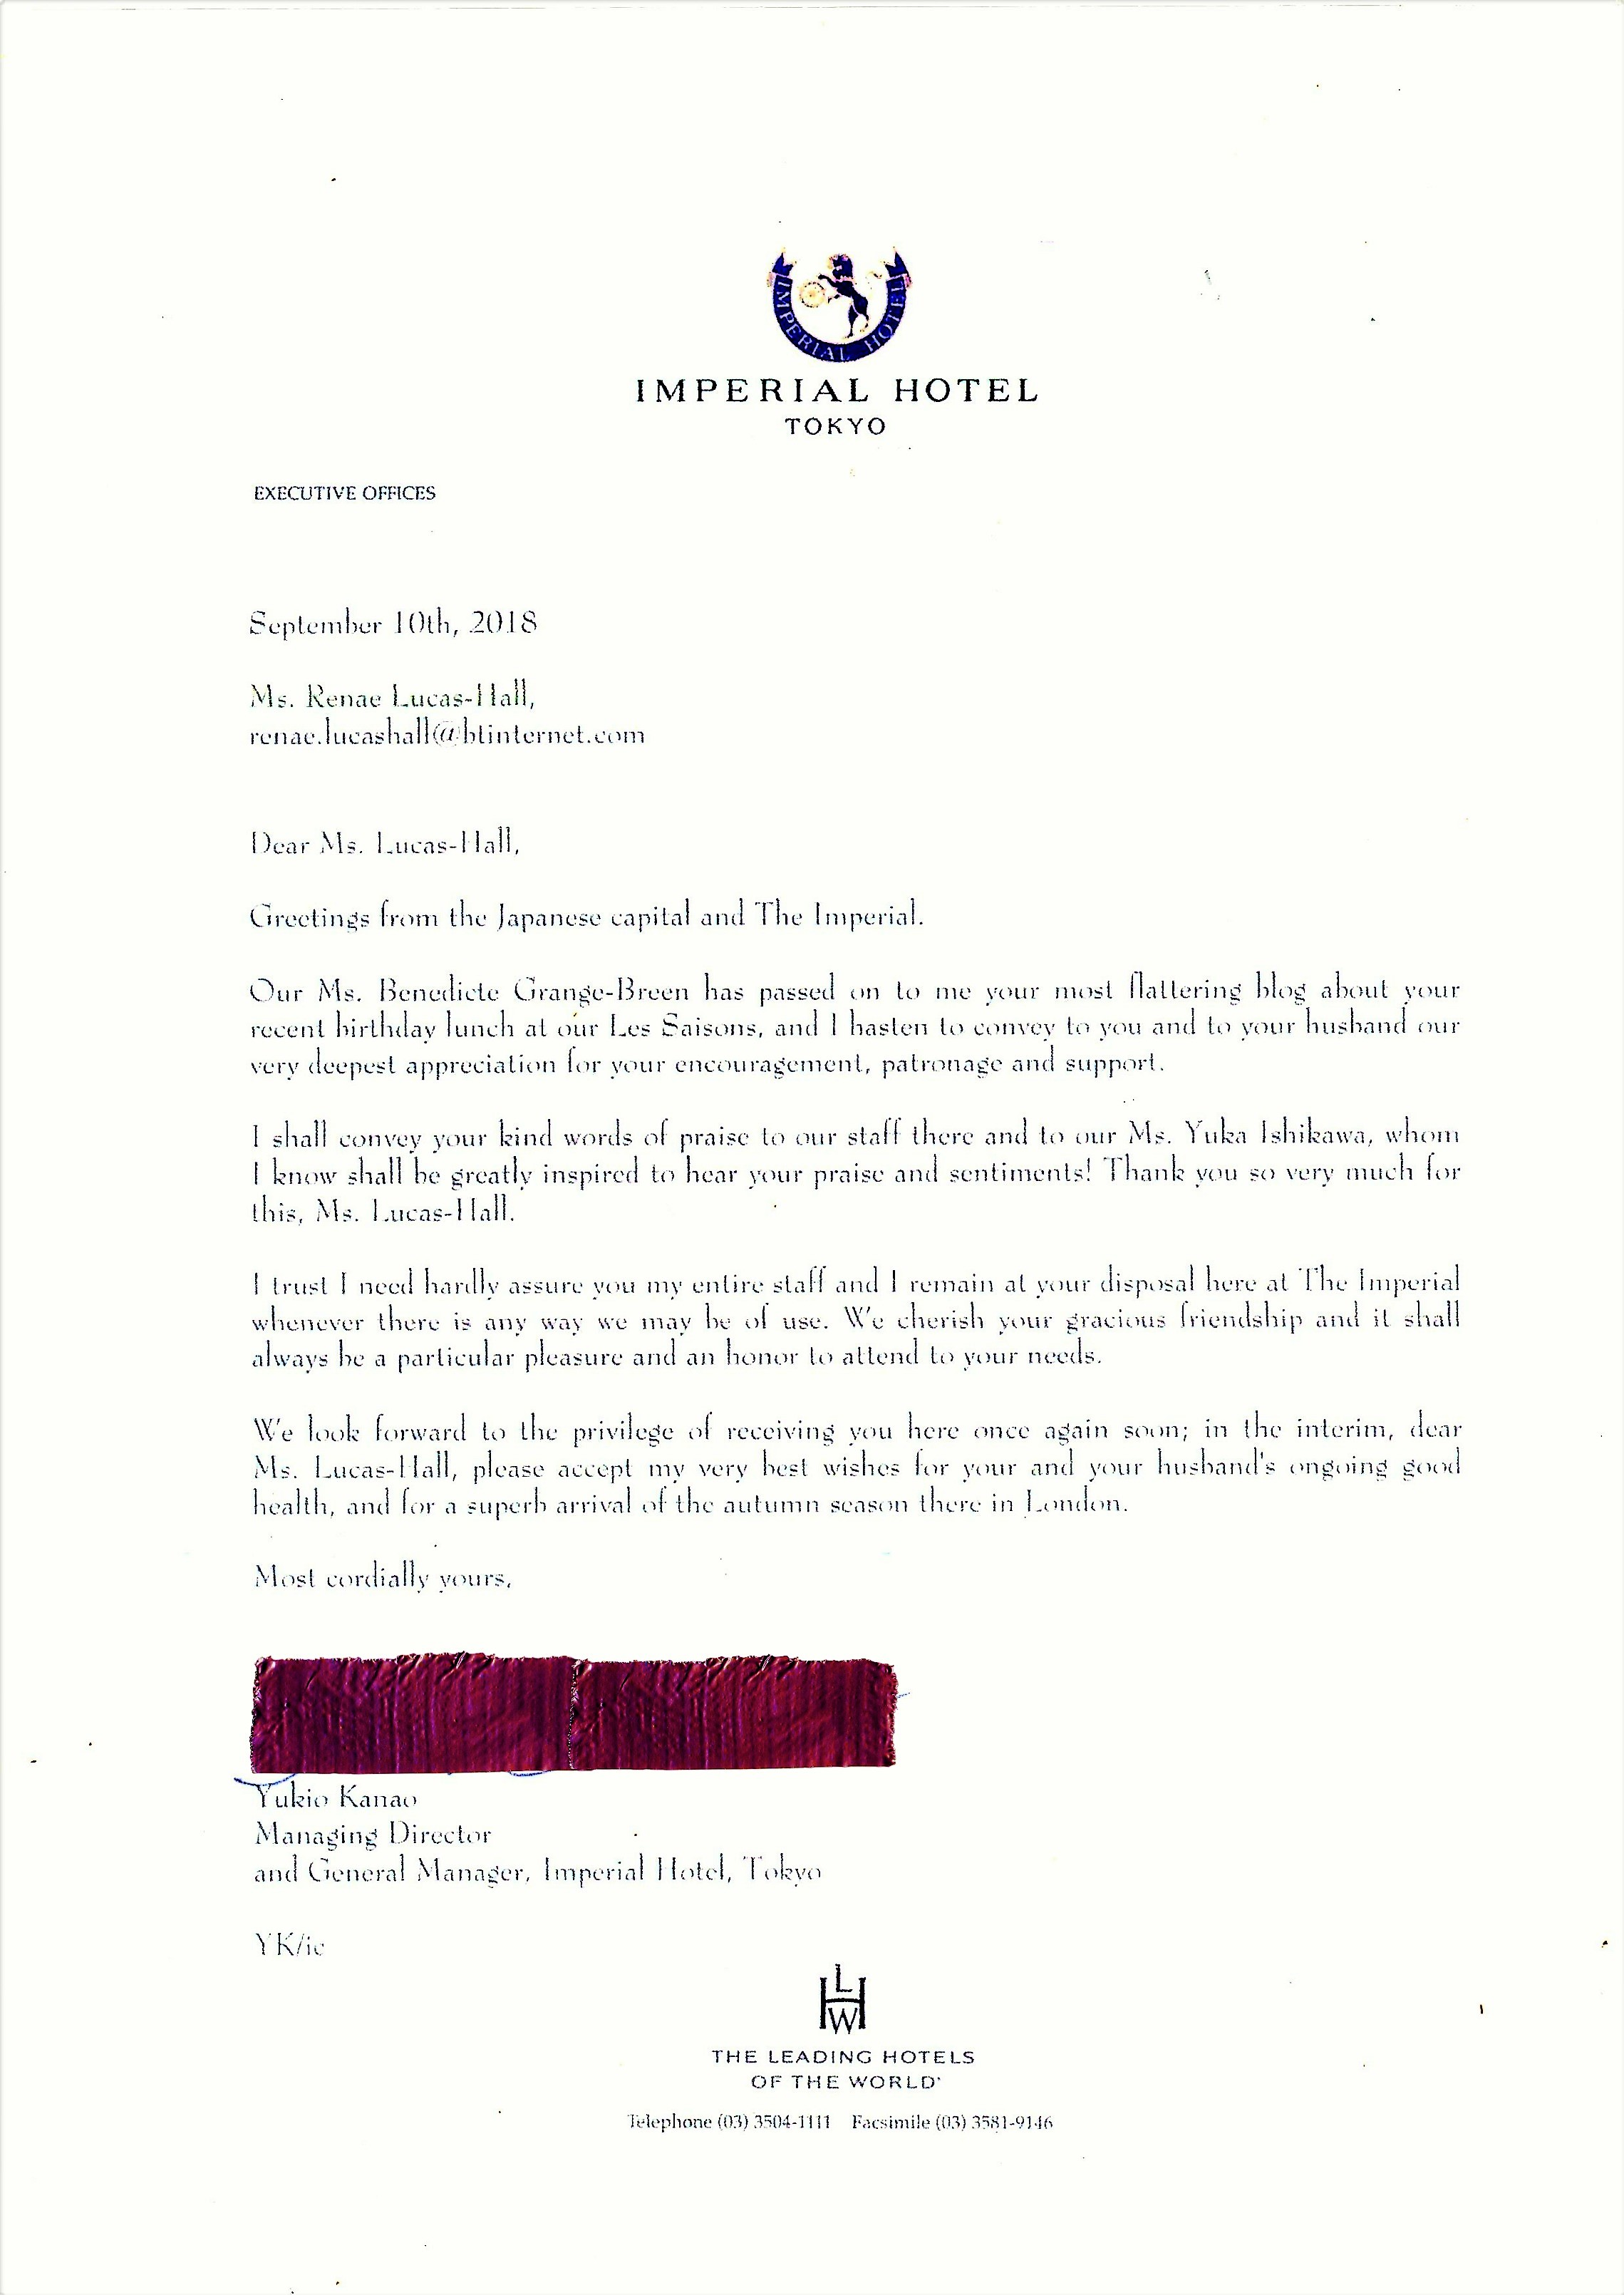 A Lovely Letter from the General Manager of the Imperial